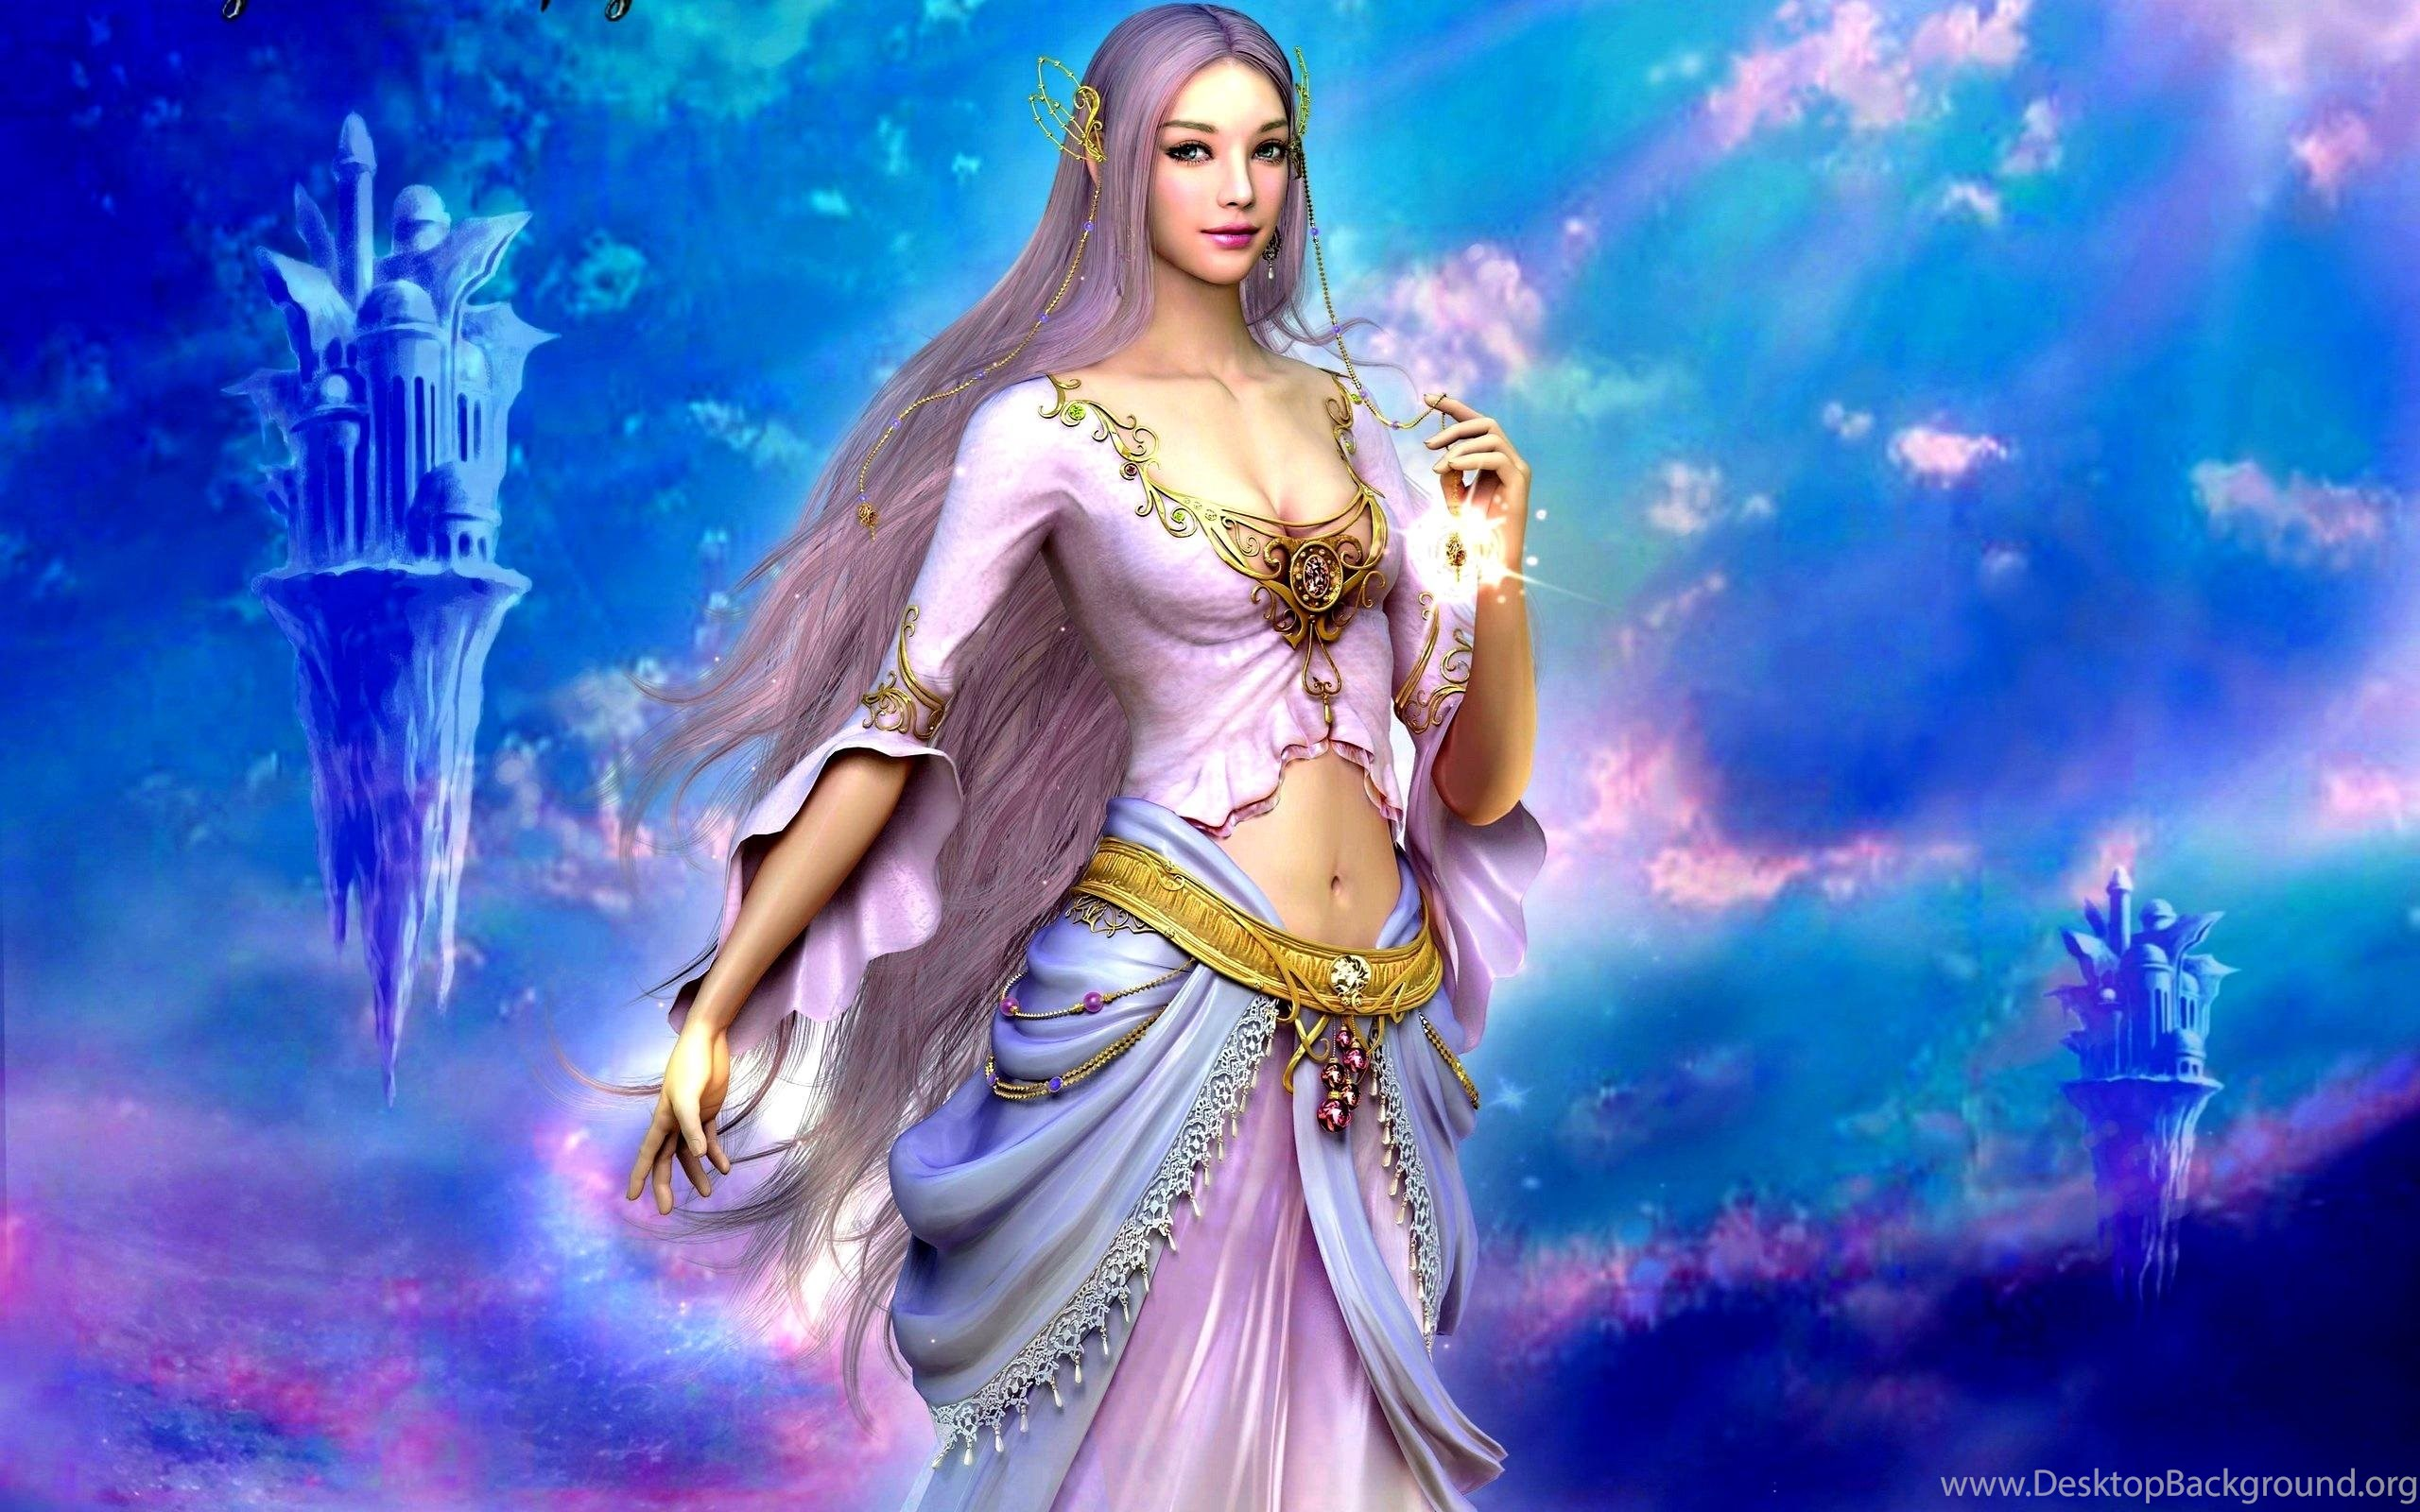 goddess wallpapers >> backgrounds with quality hd desktop background